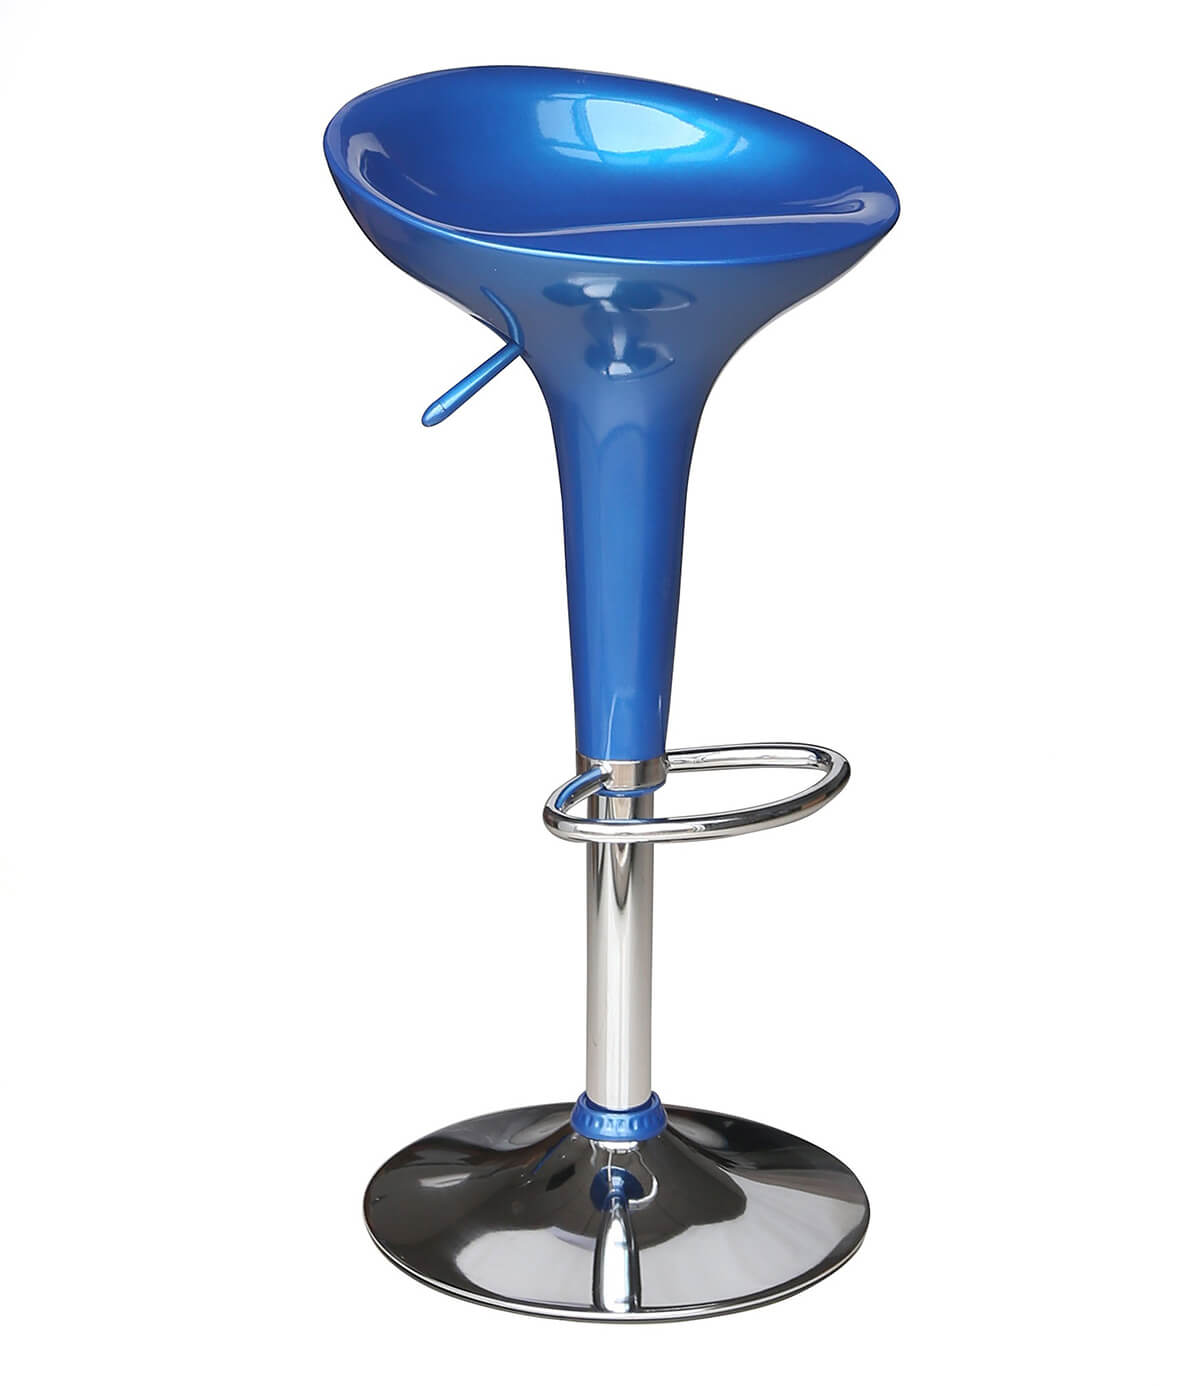 Classic Gas Lift Kitchen and Breakfast Bar Stool Blue